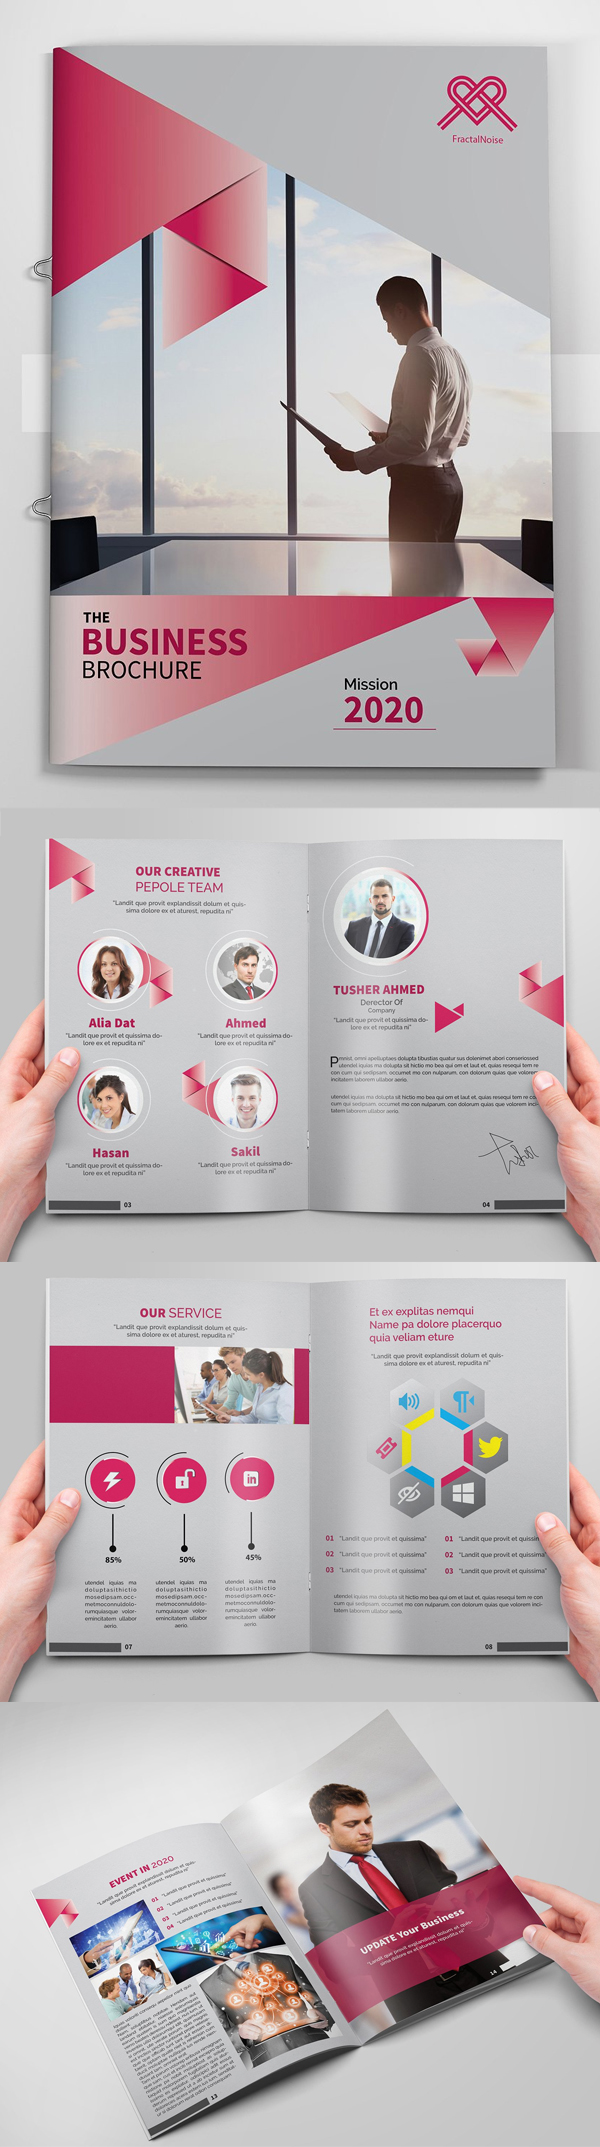 100 Professional Corporate Brochure Templates - 65